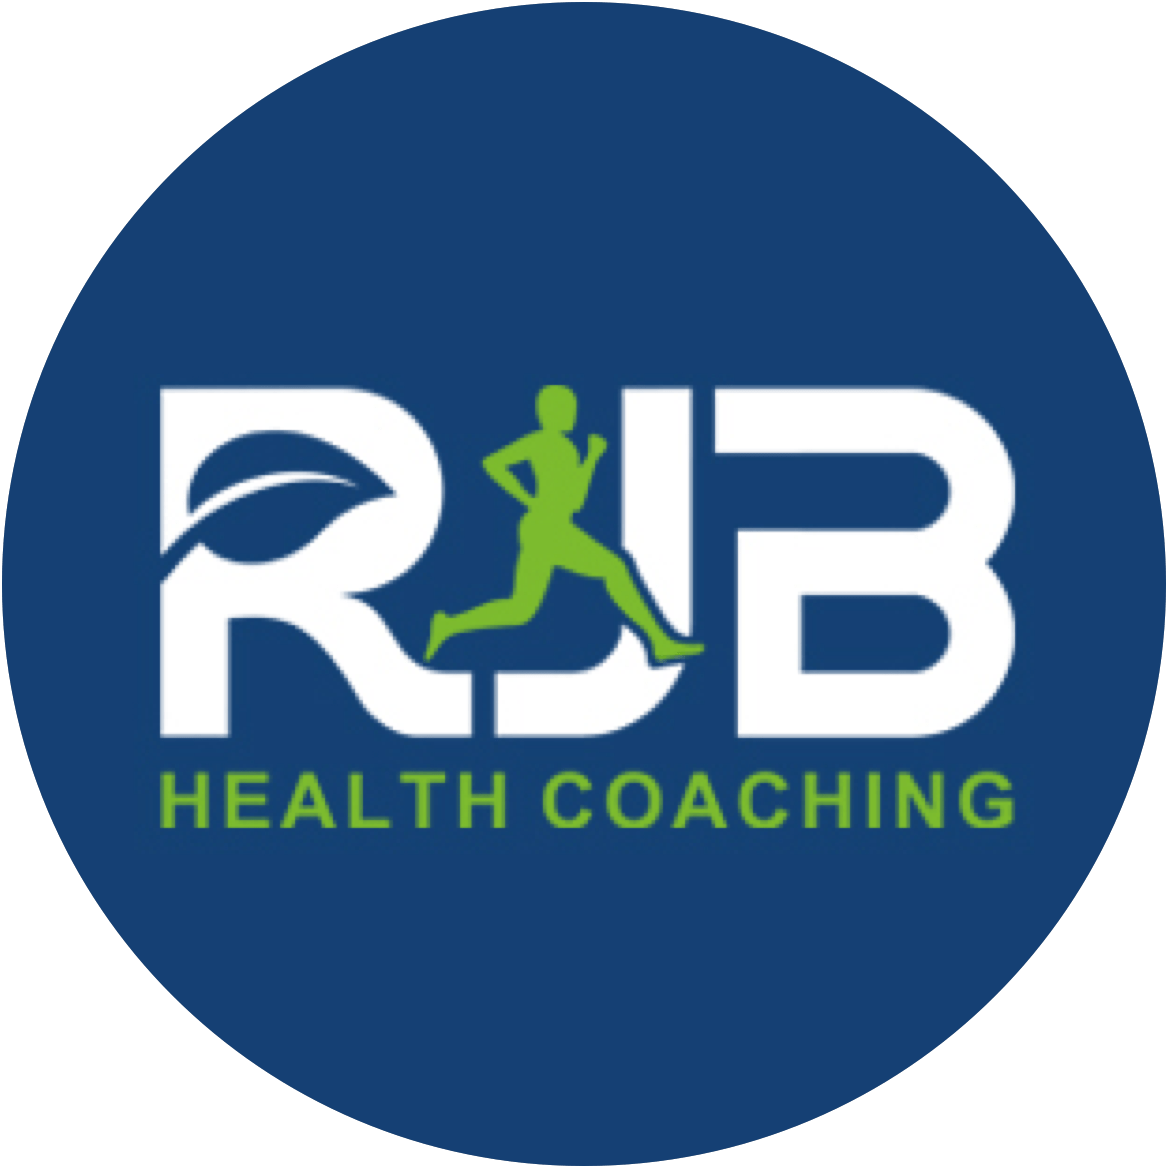 RJB HEALTH COACHING